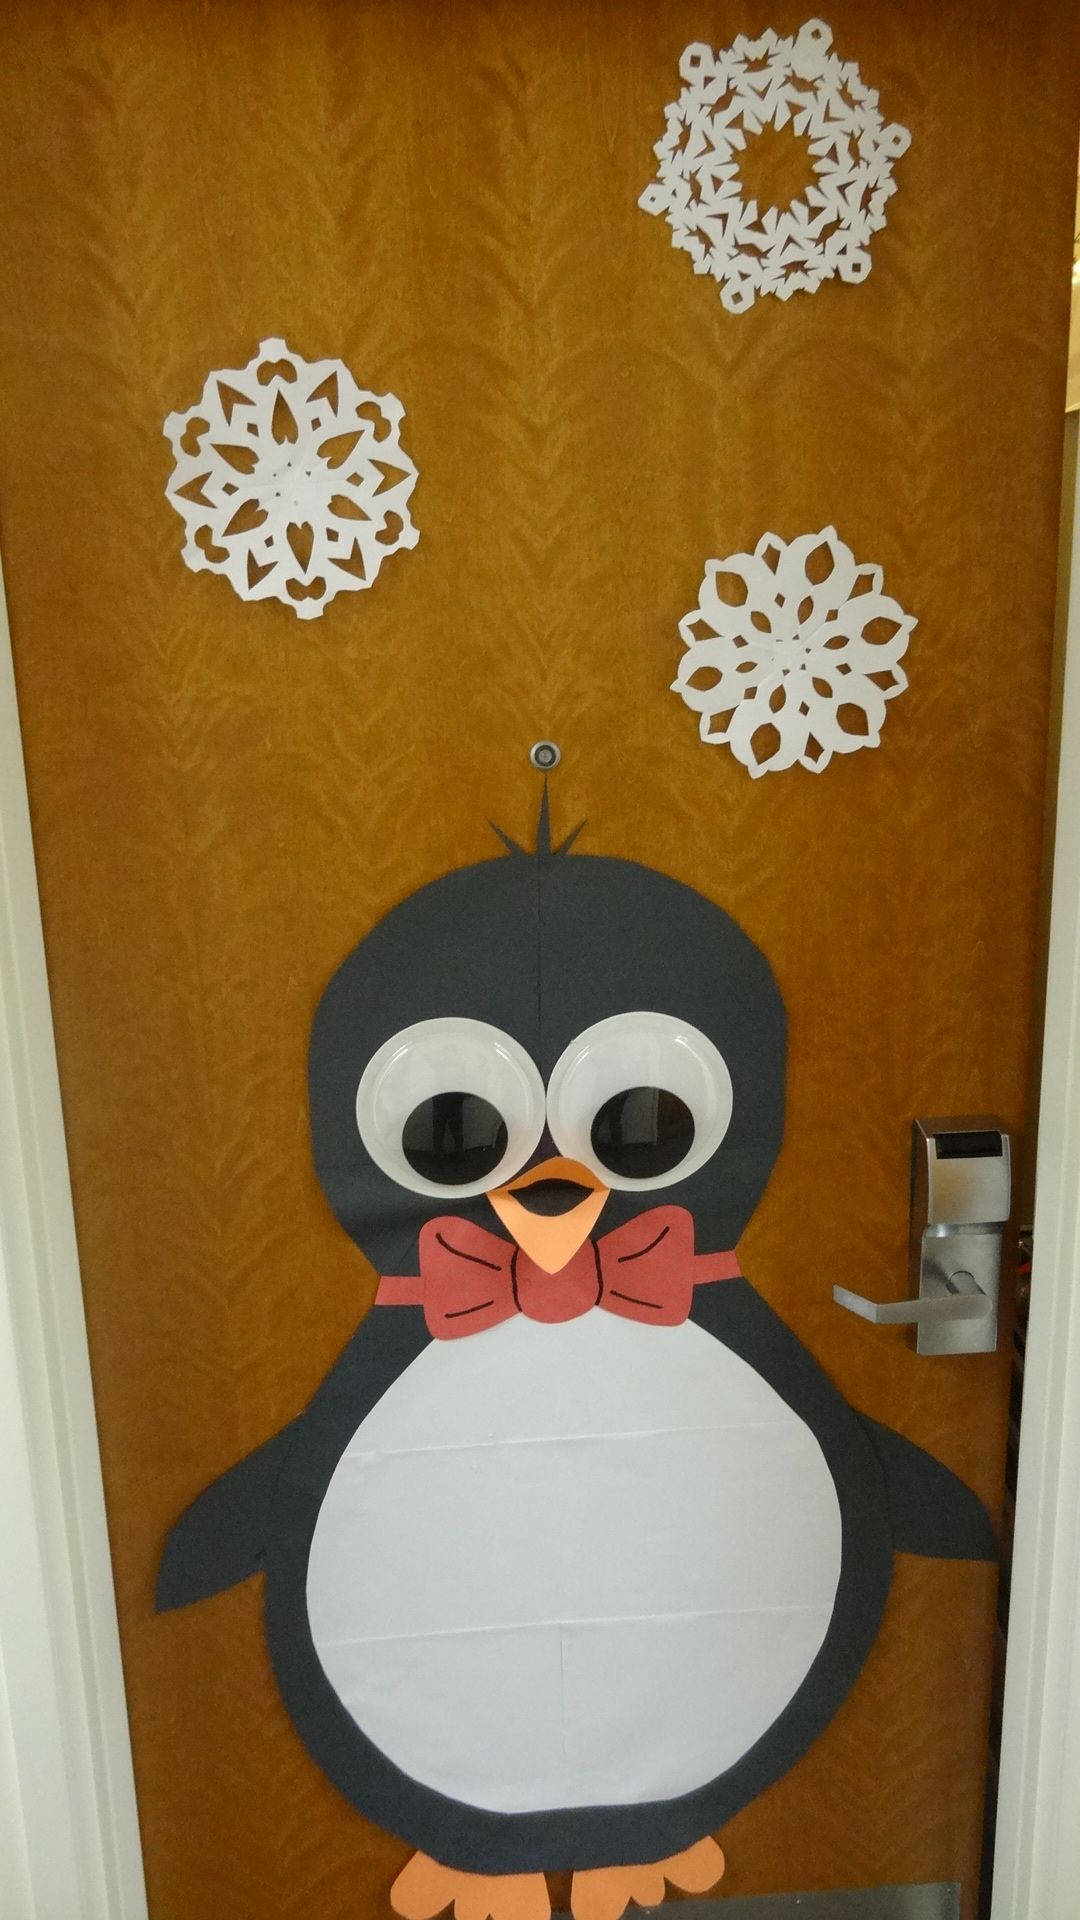 Cute holiday decoration for my dorm door I made with large